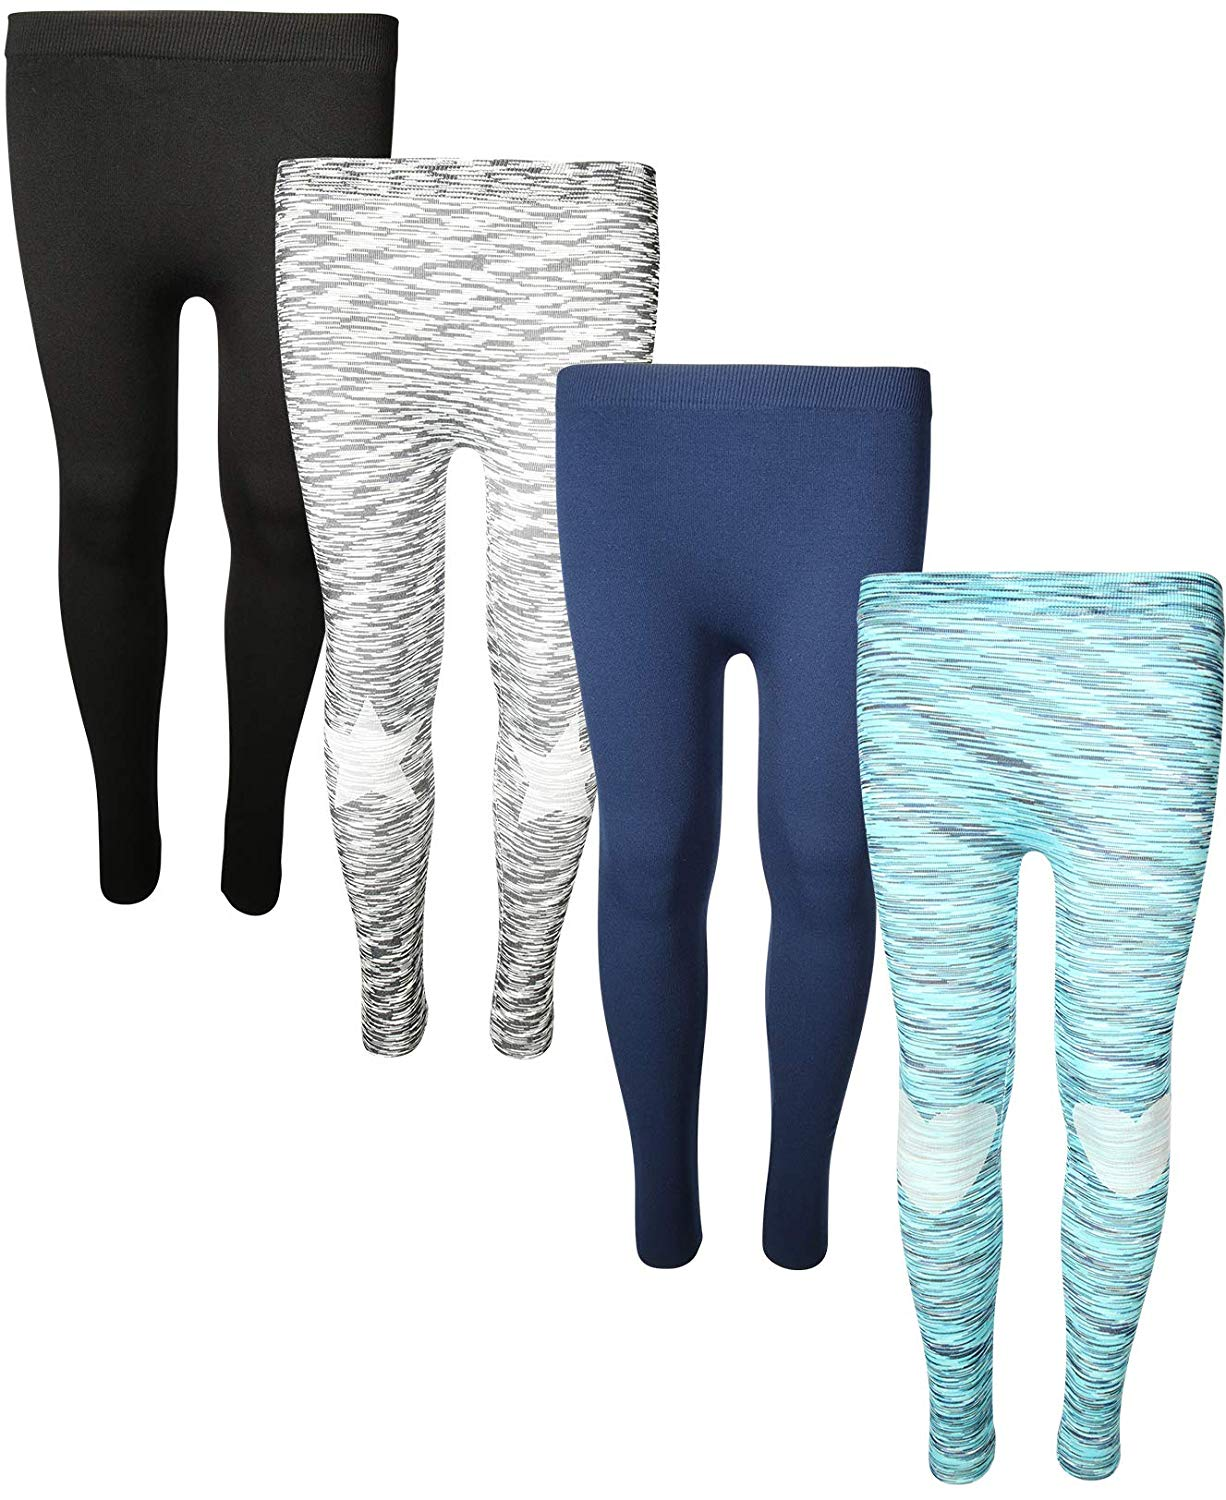 0fdc608f9b7017 Cheap 3 Pack Leggings, find 3 Pack Leggings deals on line at Alibaba.com